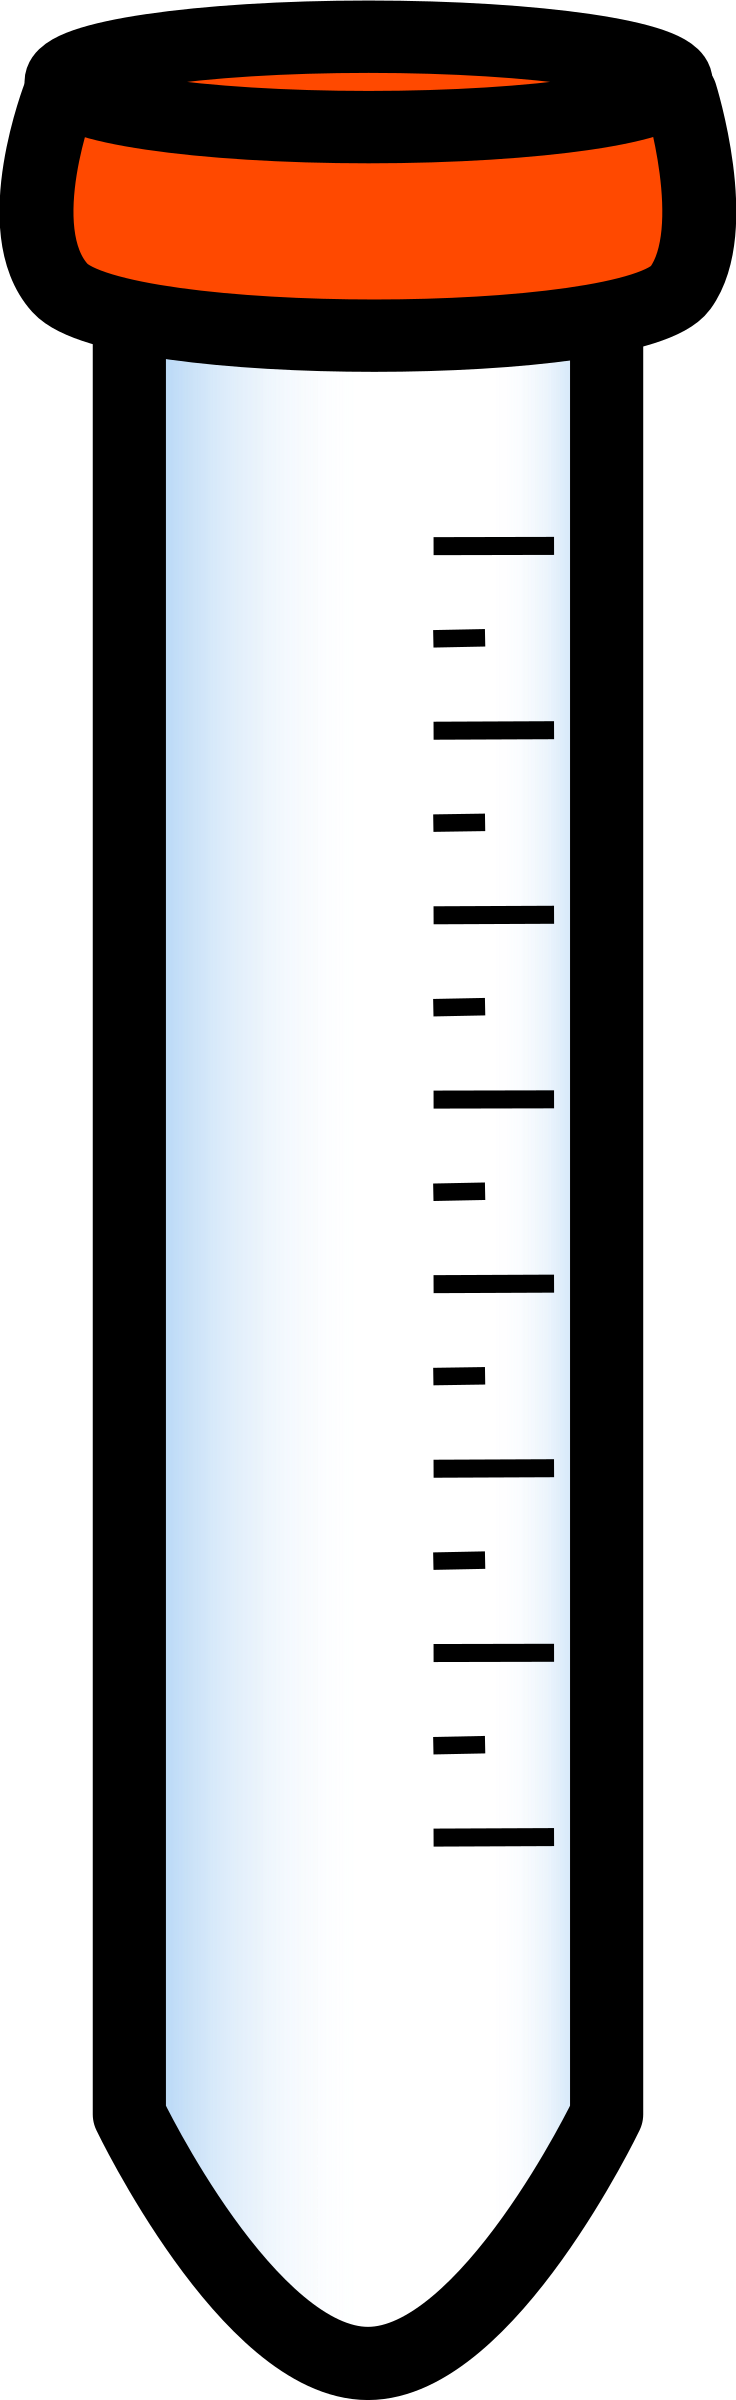 clipart conical tube